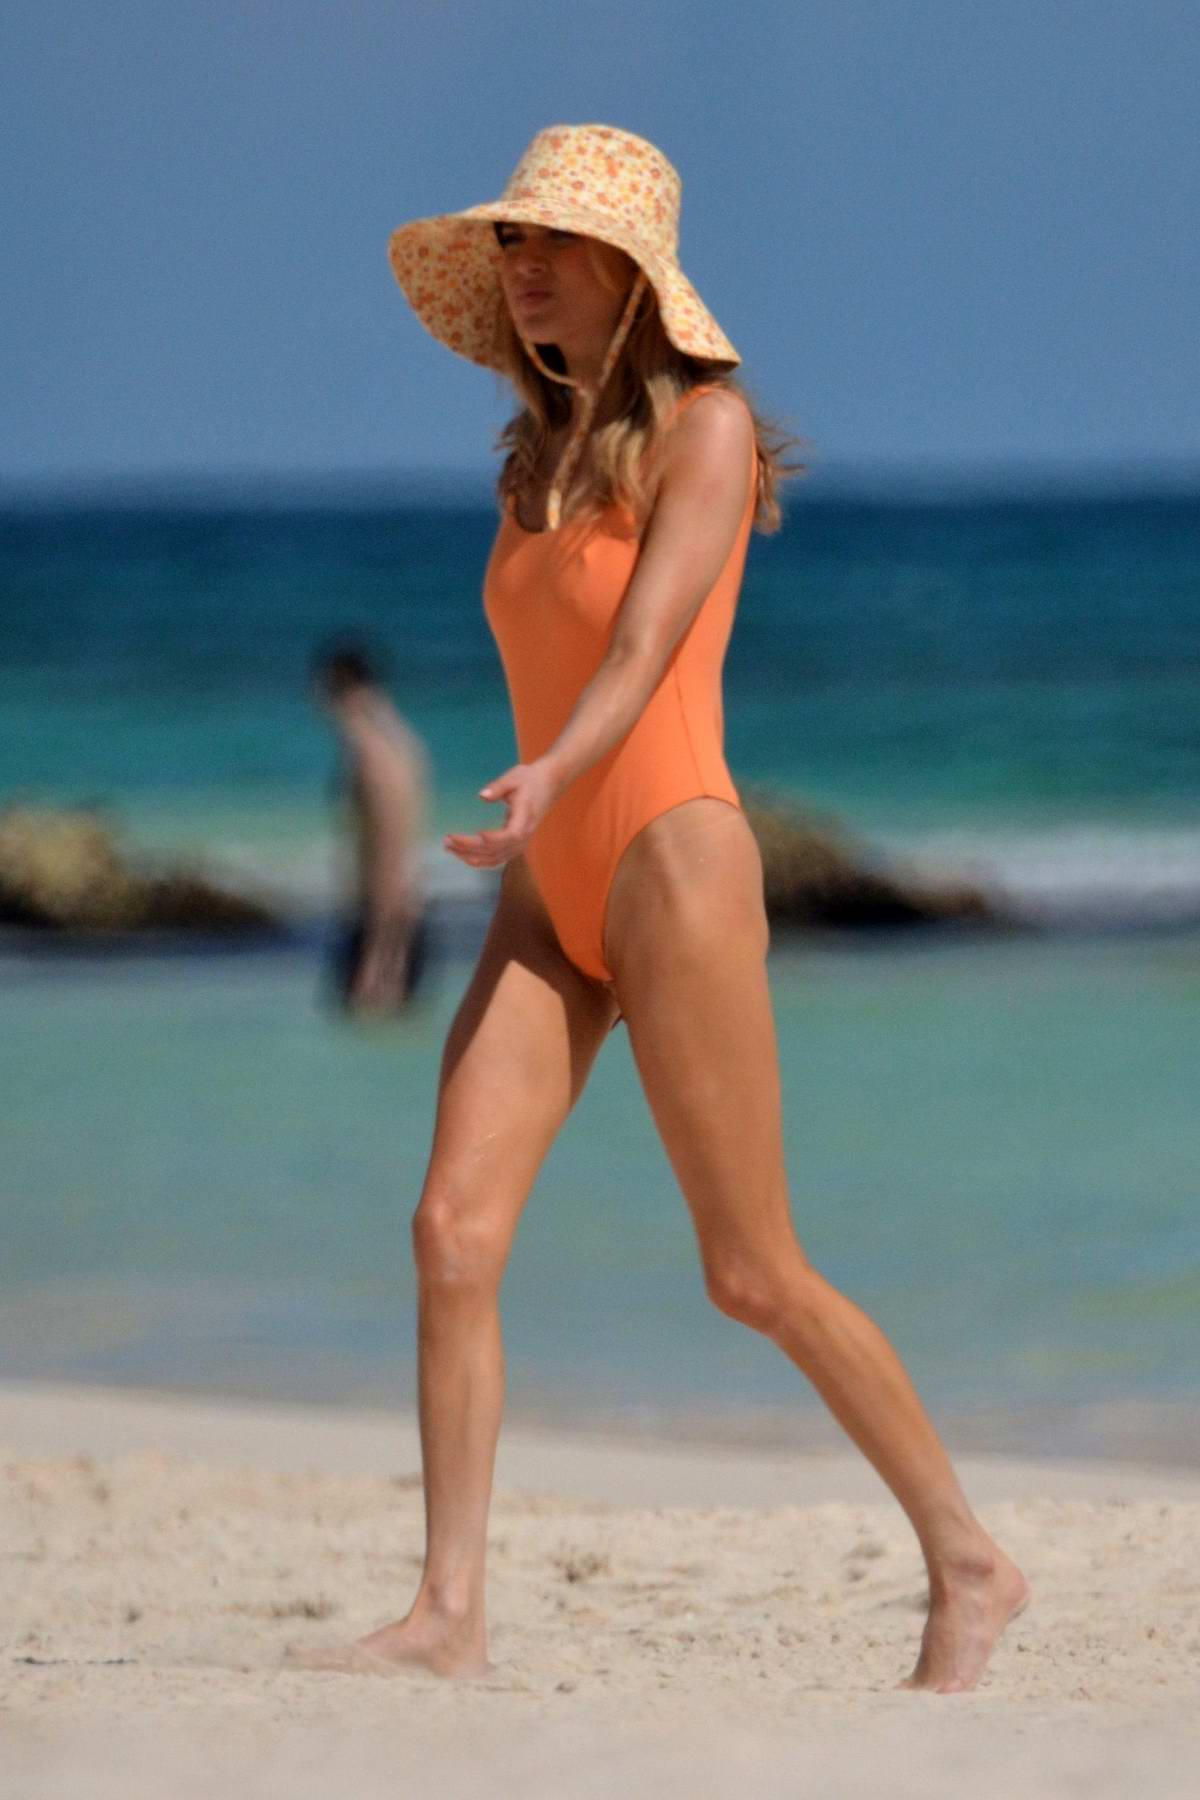 Anne Winters spotted in an orange swimsuit while enjoying some downtime with boyfriend Taylor Beau in Tulum, Mexico